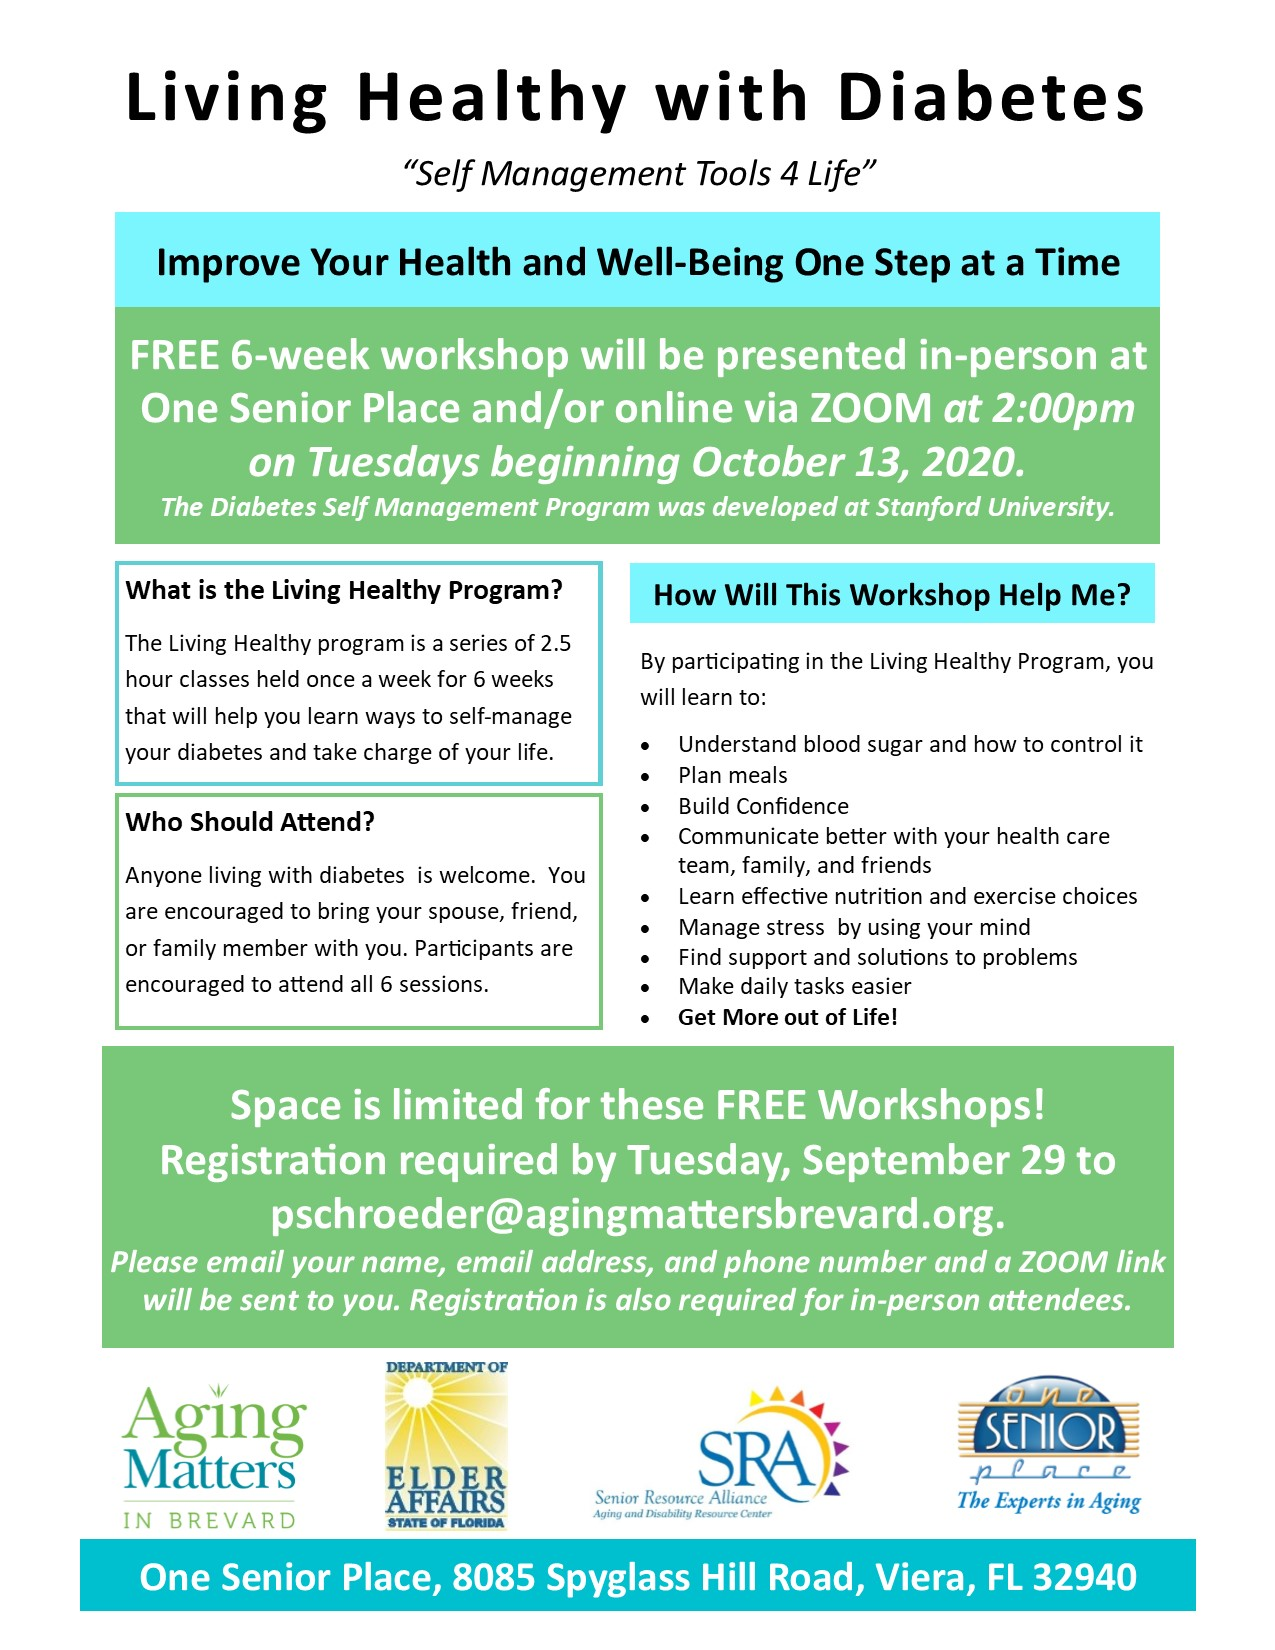 "Living Healthy with Diabetes ""Self Management Tools 4 Life"" Presented by Aging Matters in Brevard"